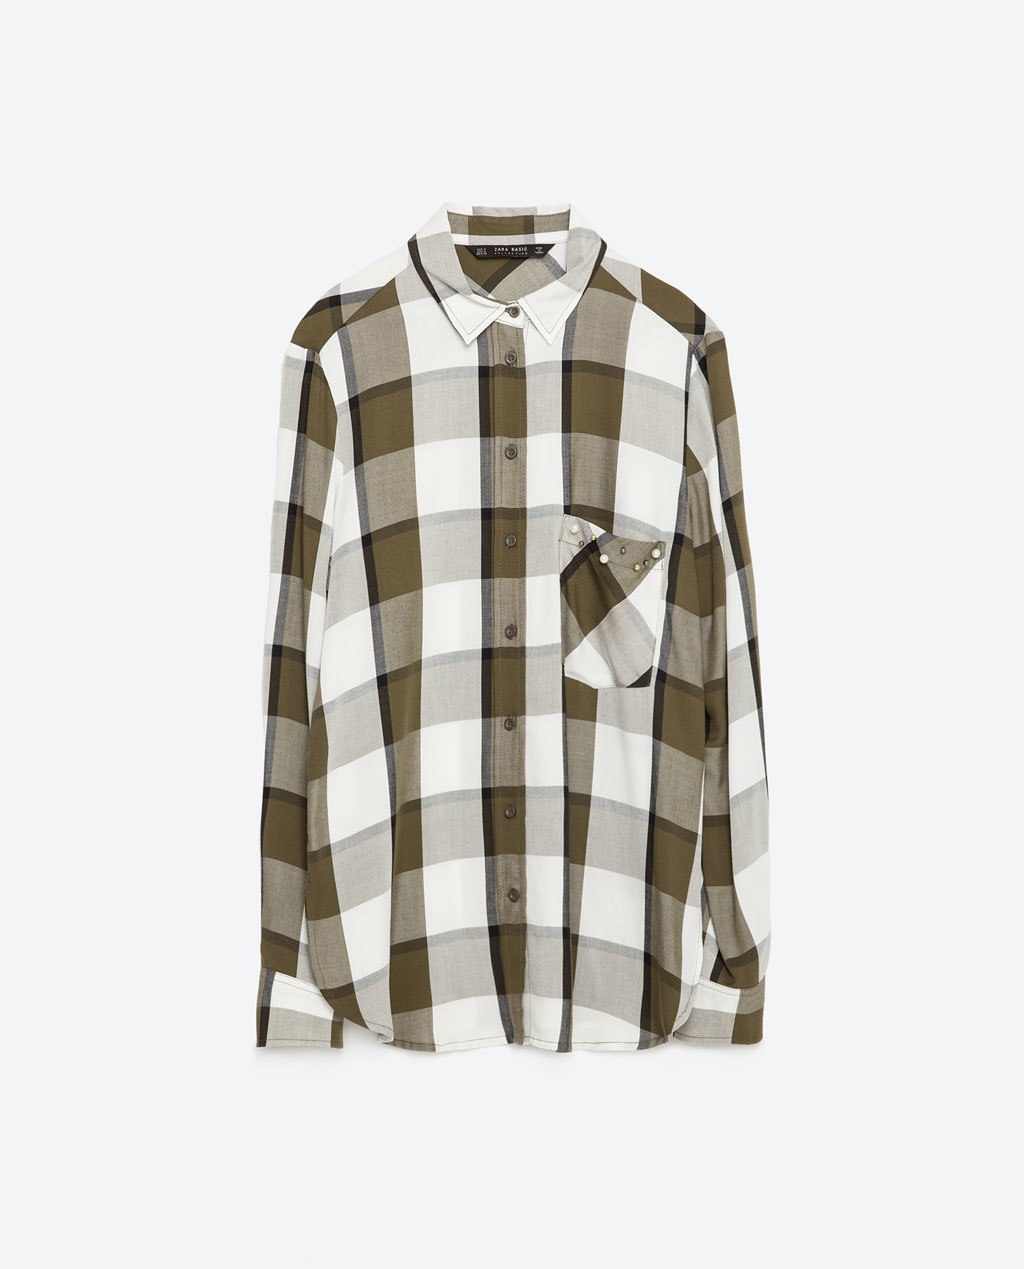 Check Shirt - neckline: shirt collar/peter pan/zip with opening; pattern: checked/gingham; length: below the bottom; style: shirt; secondary colour: white; predominant colour: chocolate brown; occasions: casual; fibres: viscose/rayon - 100%; fit: straight cut; sleeve length: long sleeve; sleeve style: standard; pattern type: fabric; pattern size: standard; texture group: woven light midweight; season: s/s 2016; wardrobe: highlight